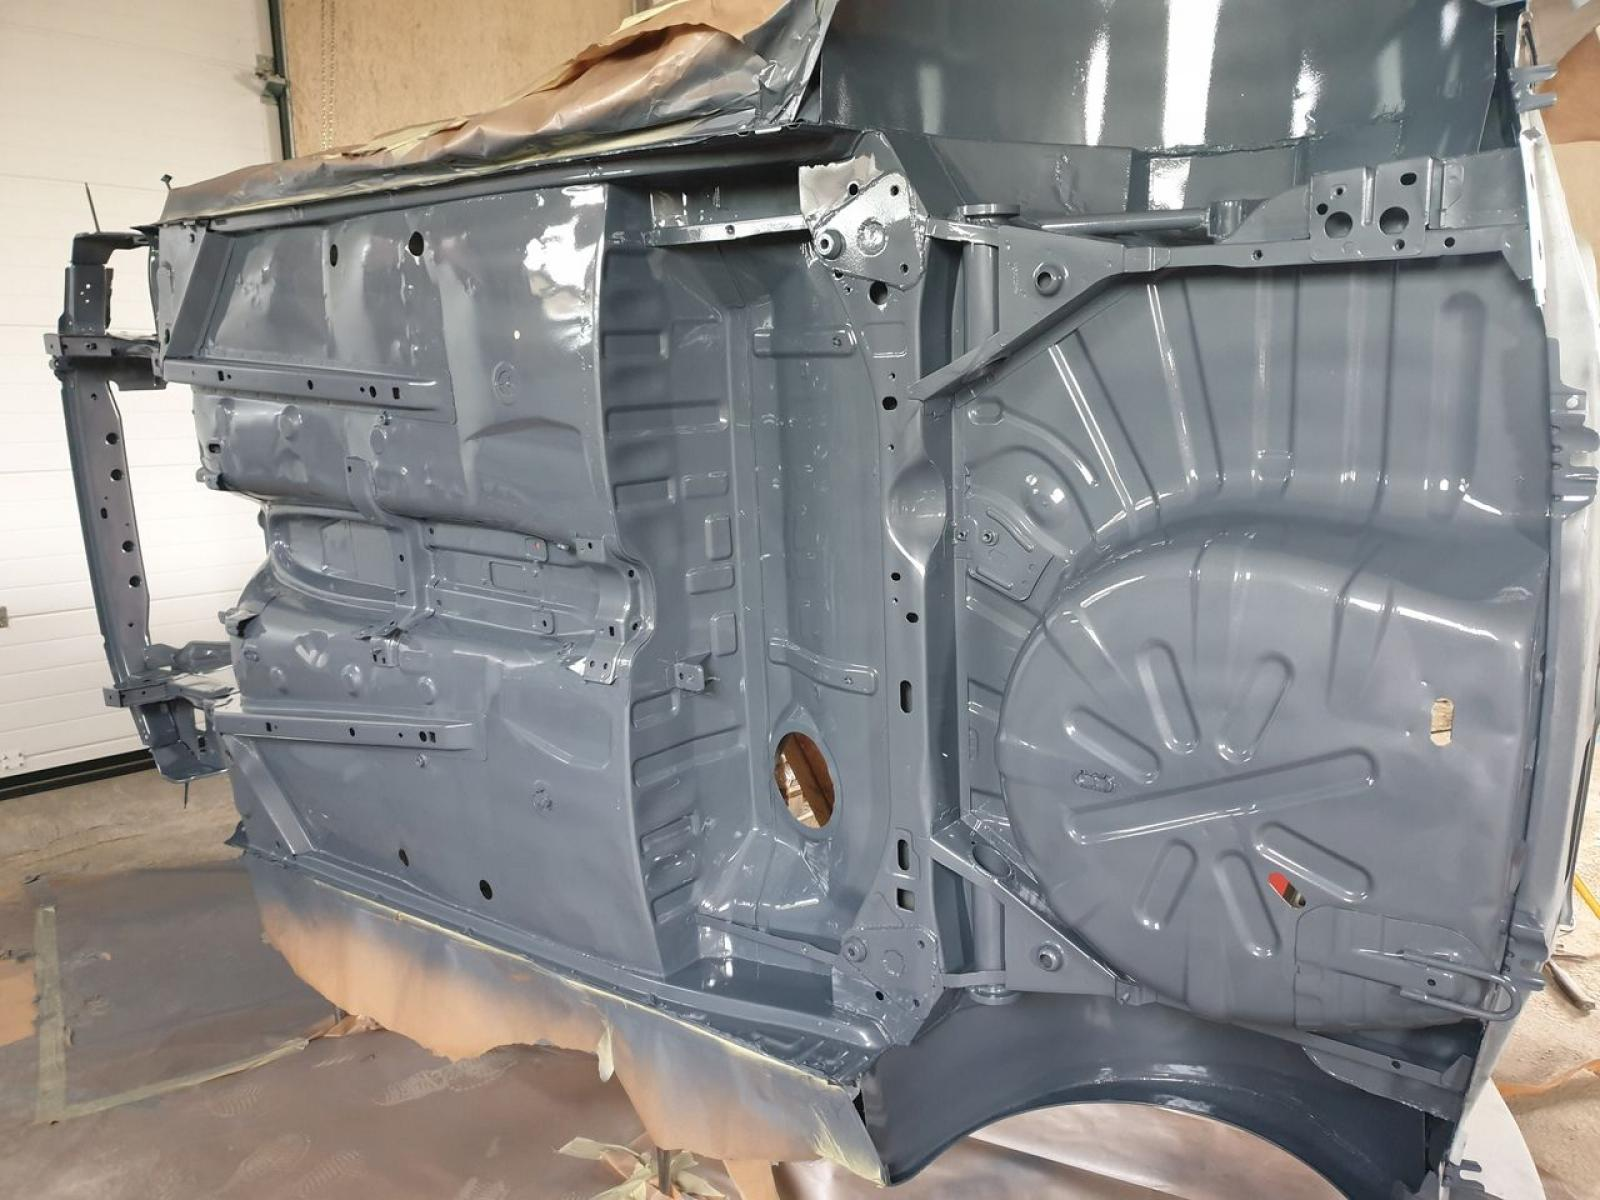 Renault Clio S1600 chassis - 5